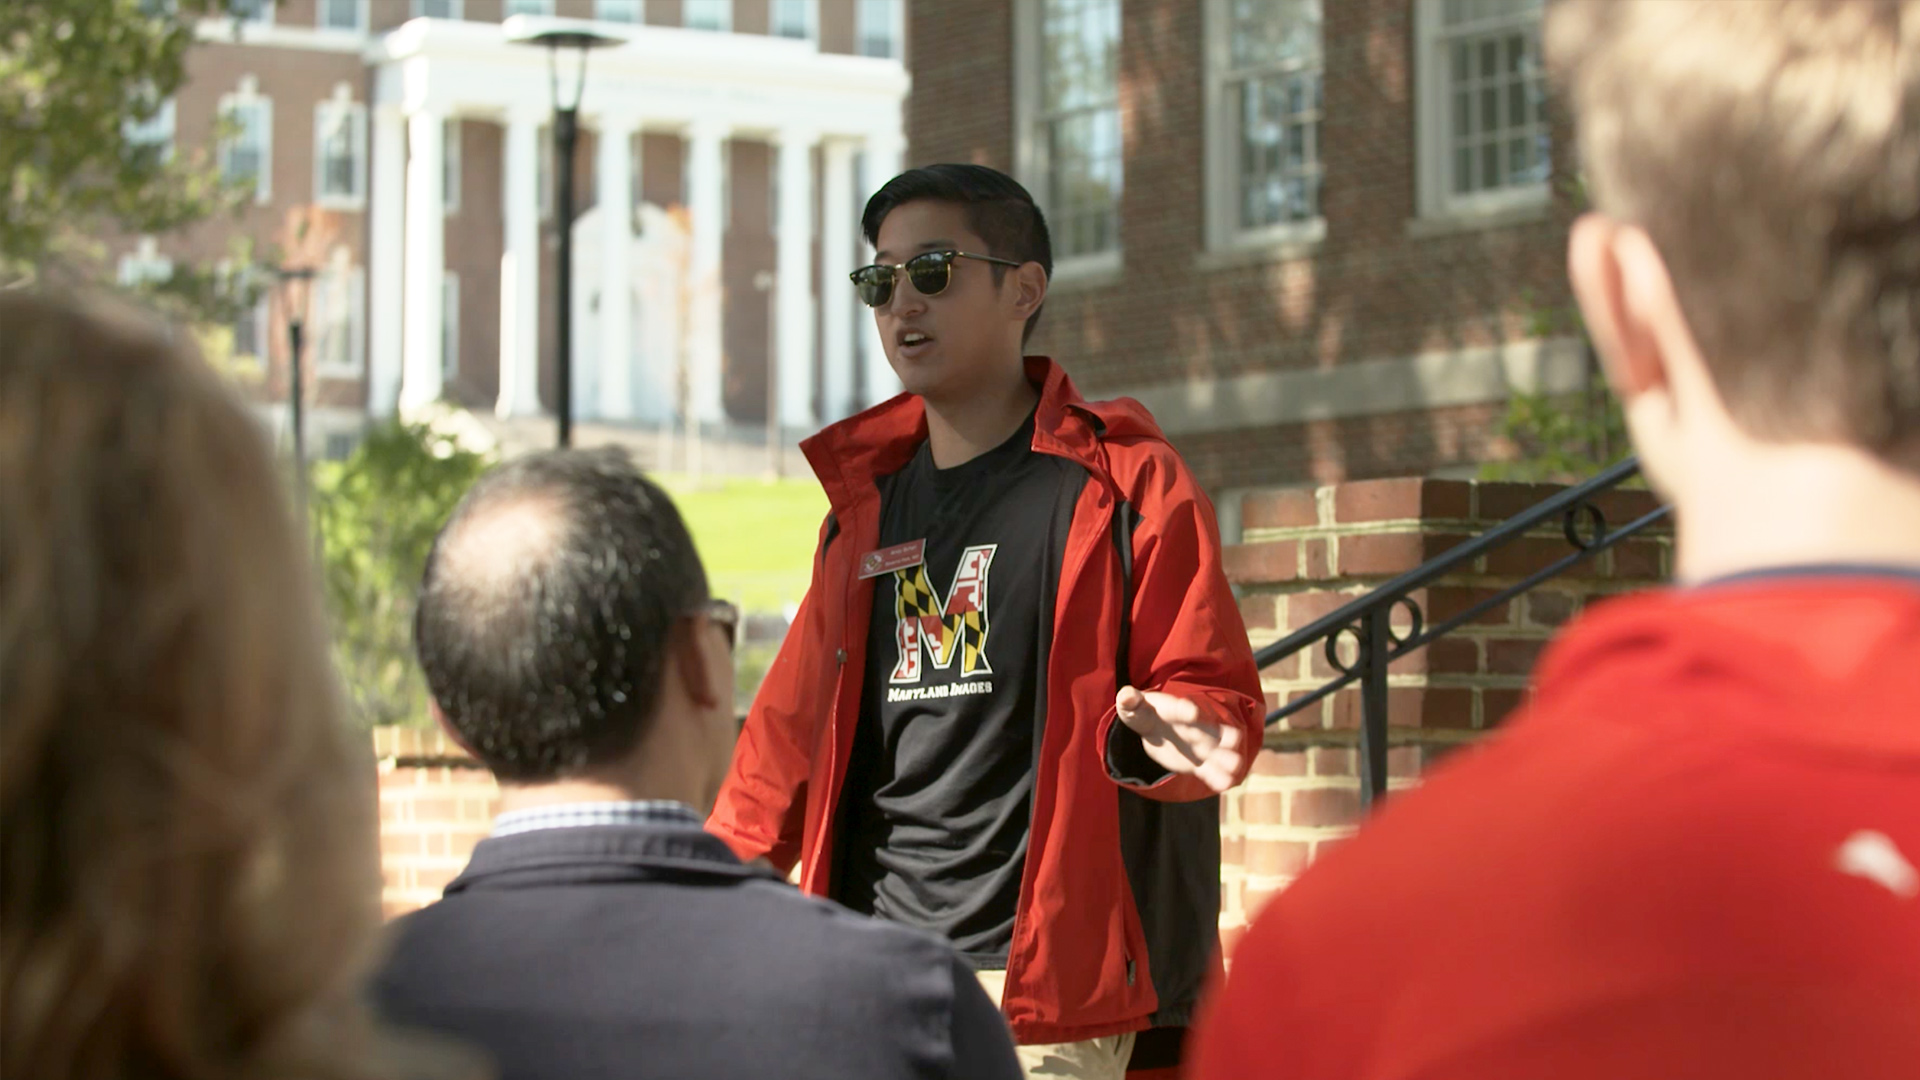 UMD Student Shares Story of Strength in the Face of Injury